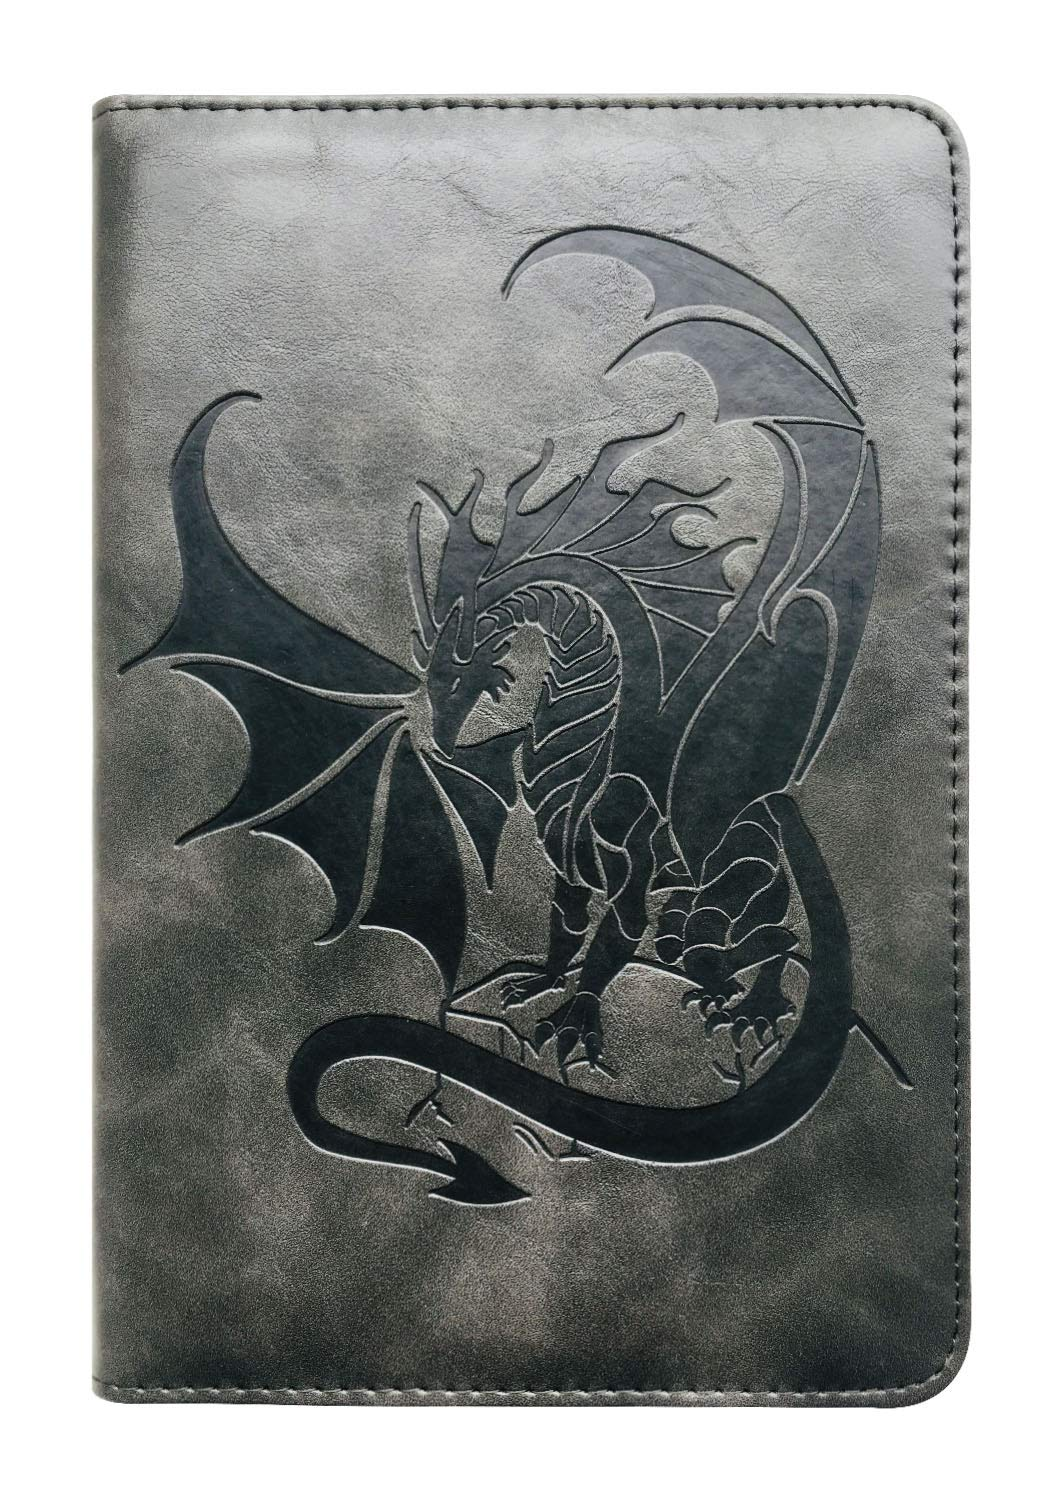 Black Dragon Writing Journal by SohoSpark, Refillable Faux Leather, Lined Personal Diary for Travel, 6x8.75 Notebook for Writers. Fountain Pen Safe with Lay-Flat Binding.